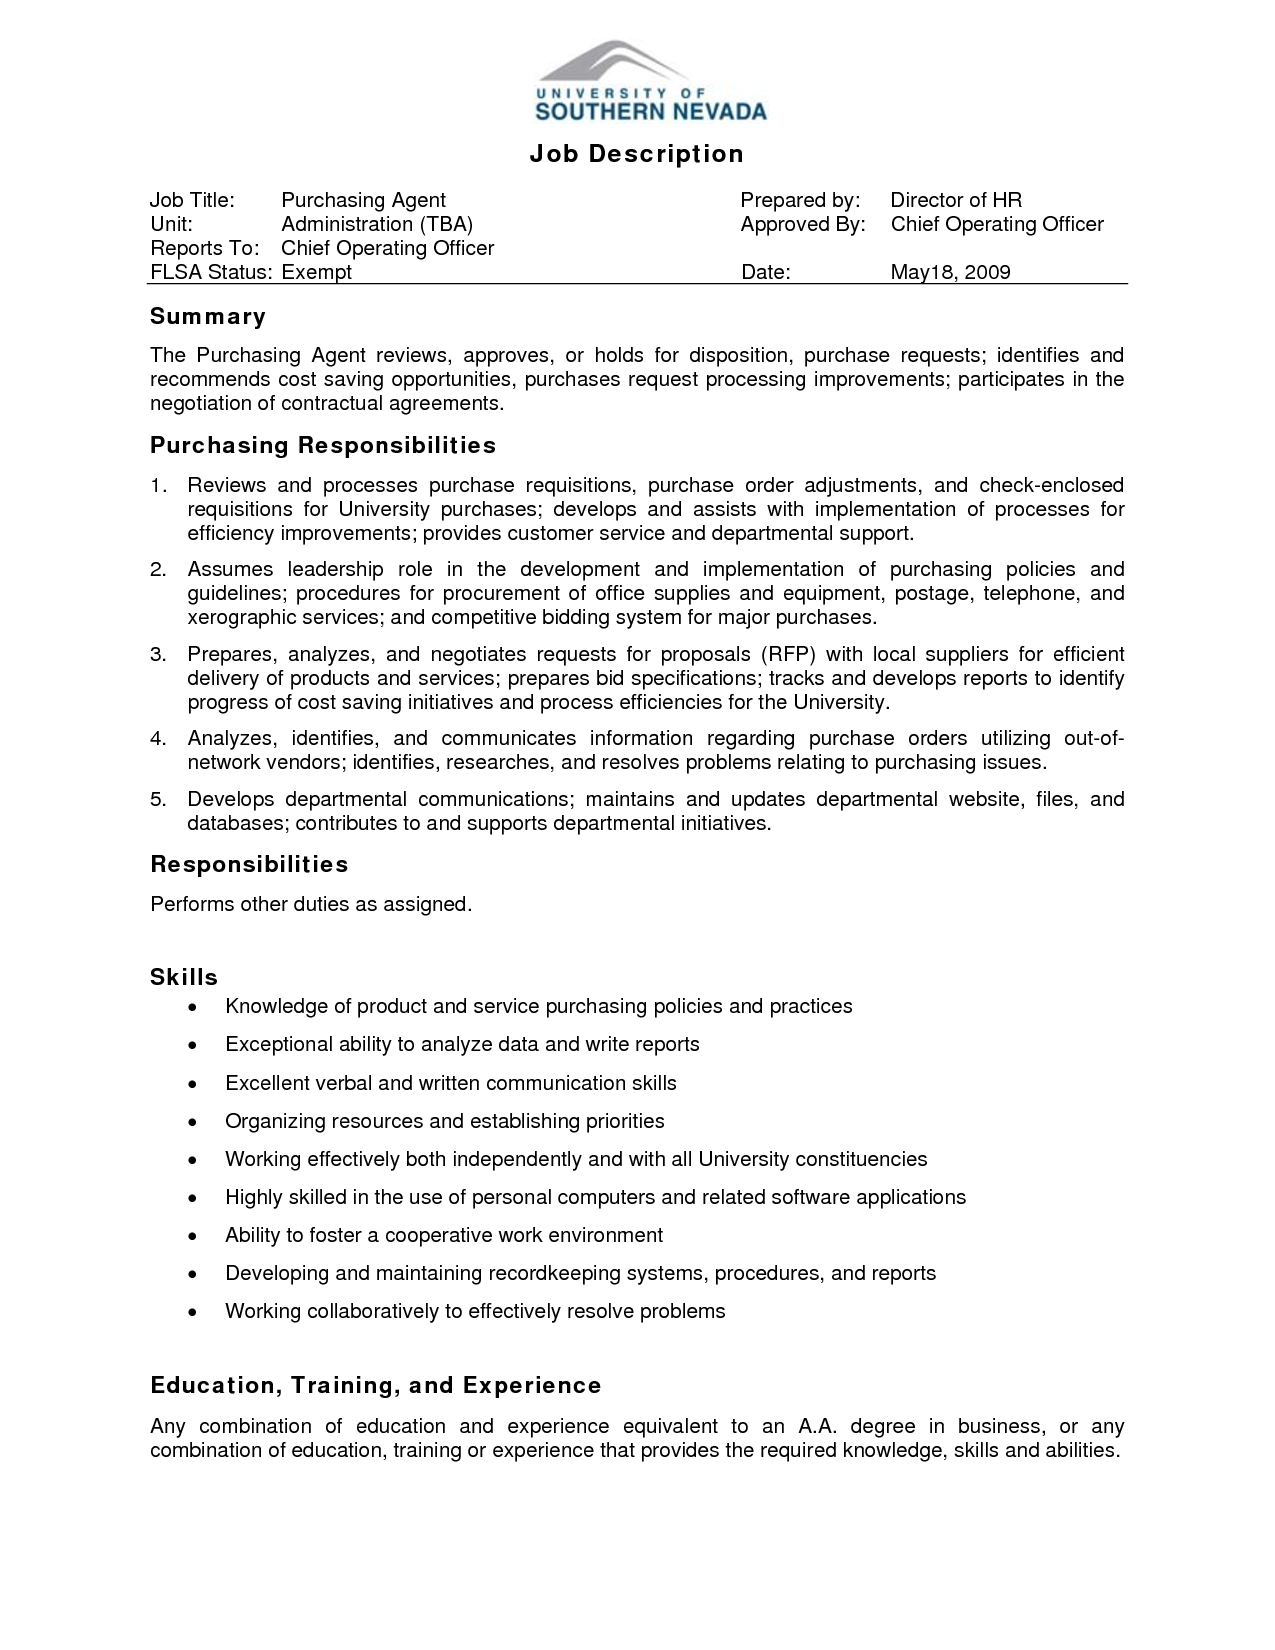 Executive Assistant Roles and Responsibilities and Key Strengths of Executive Assistant